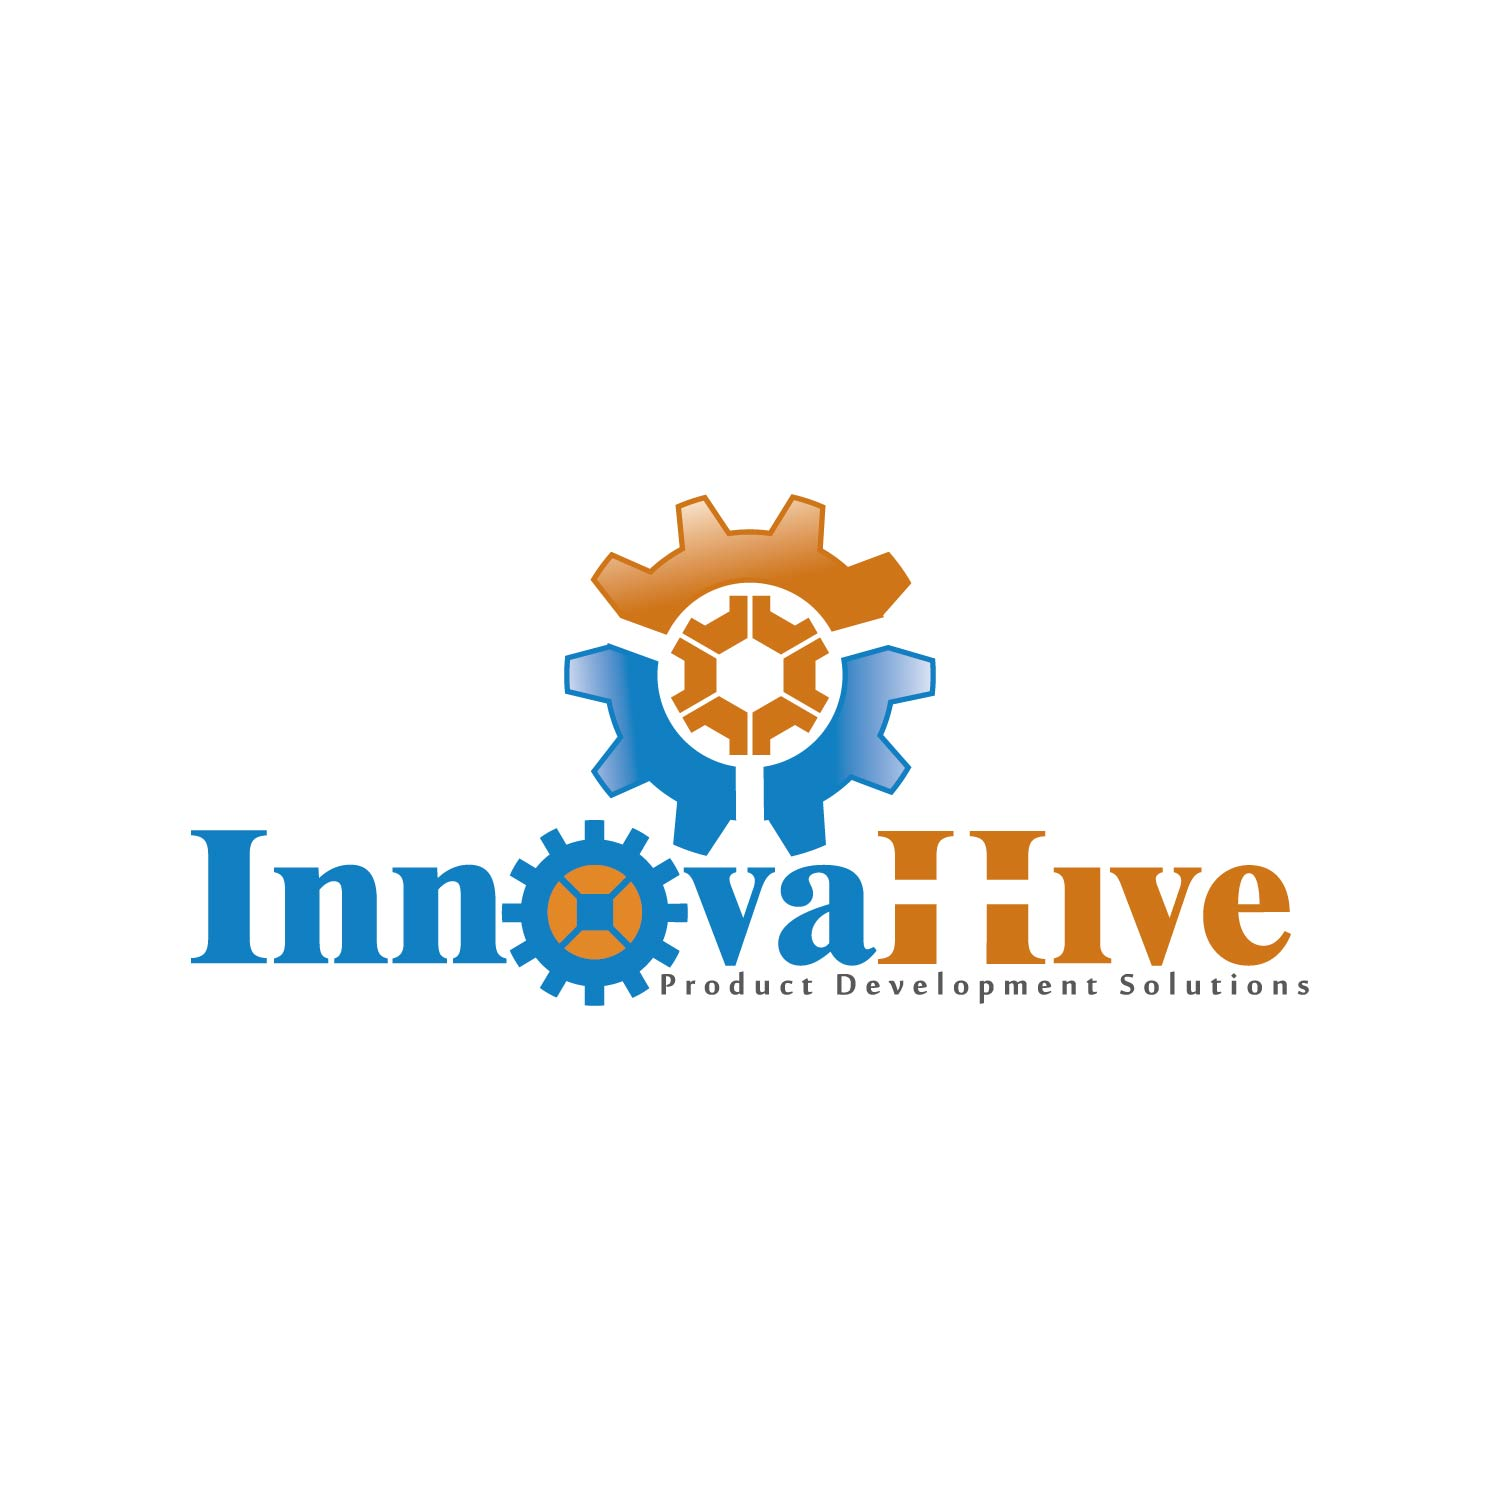 Logo Design by lagalag - Entry No. 51 in the Logo Design Contest InnovaHive Logo Design.